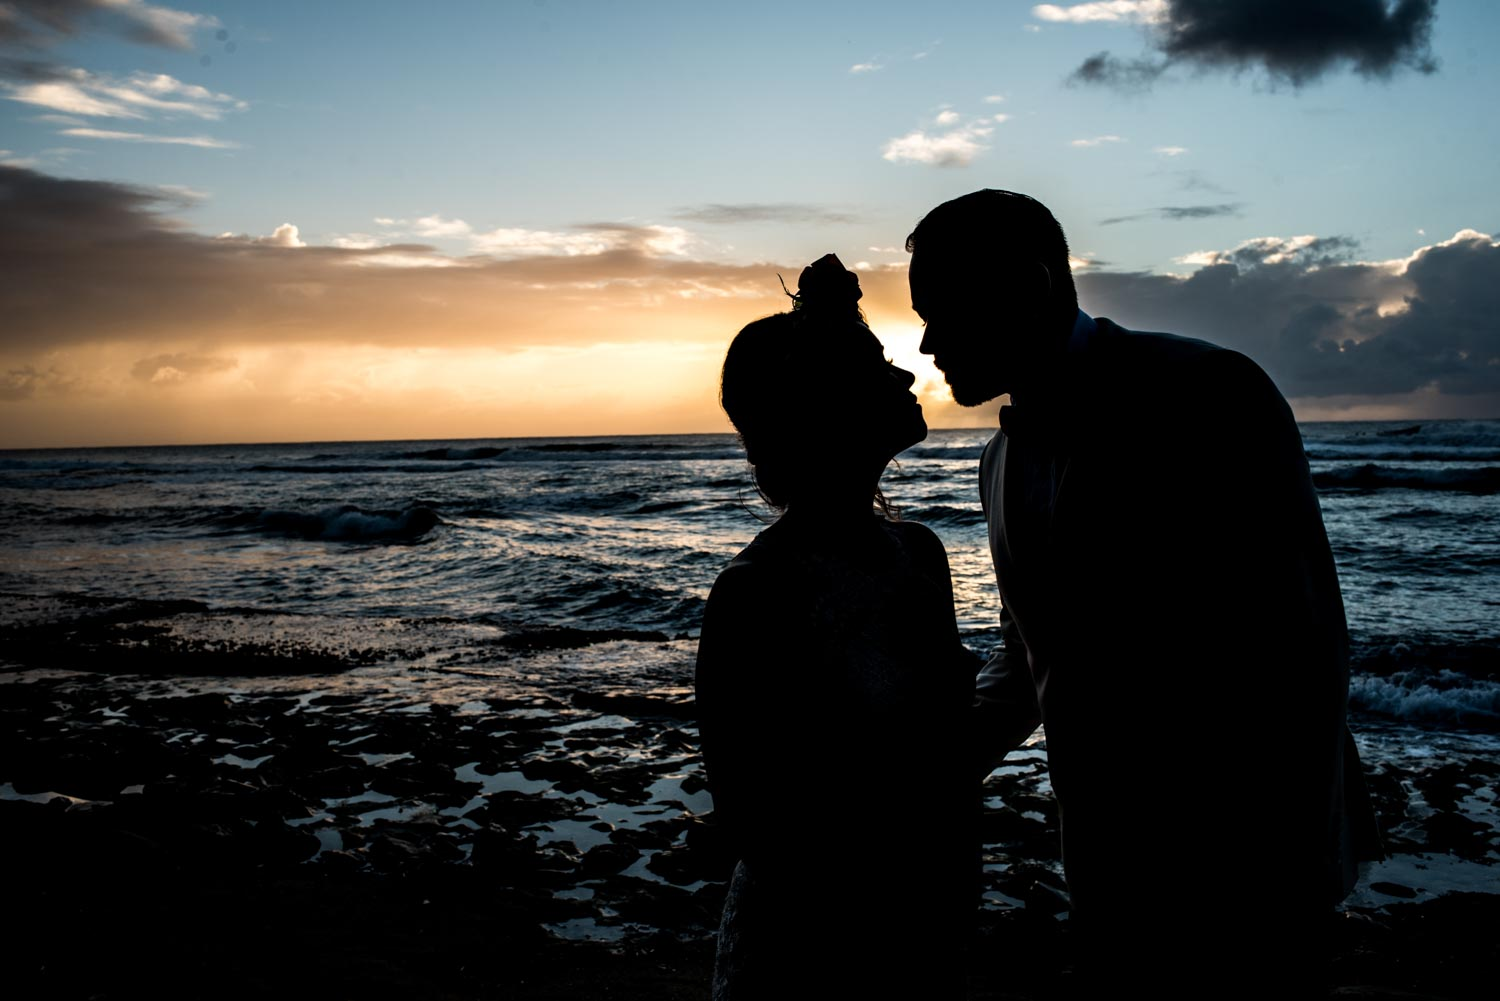 Silhouette of the bride and groom looking at eachother on the beach during a yellow sunset.